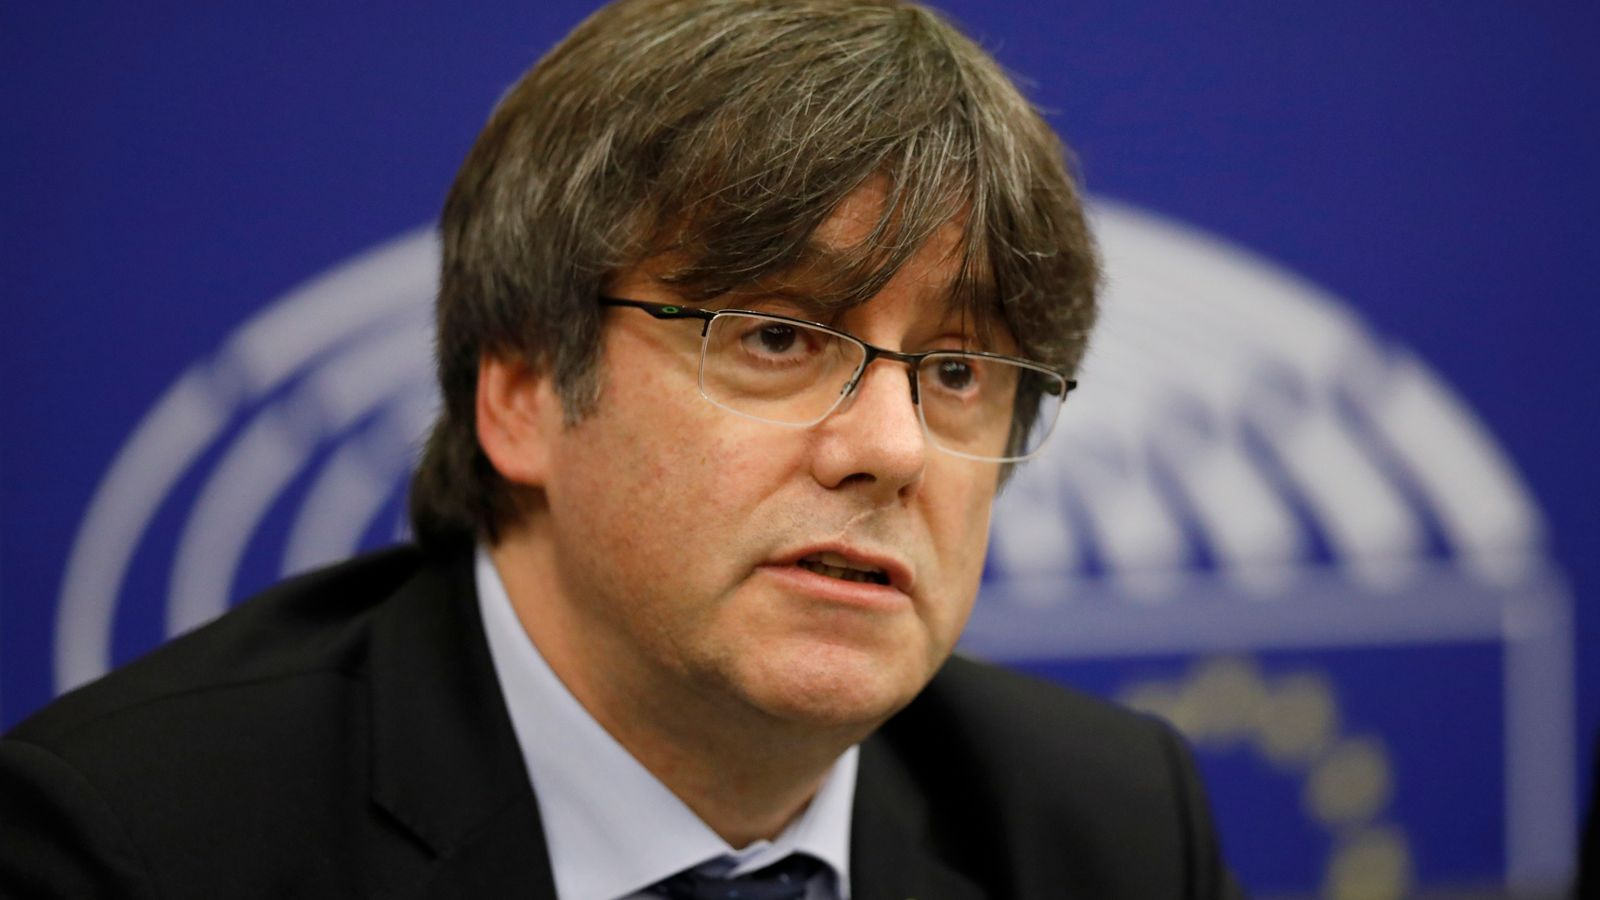 Carles Puigdemont: Former Catalan independence leader arrested in Italy